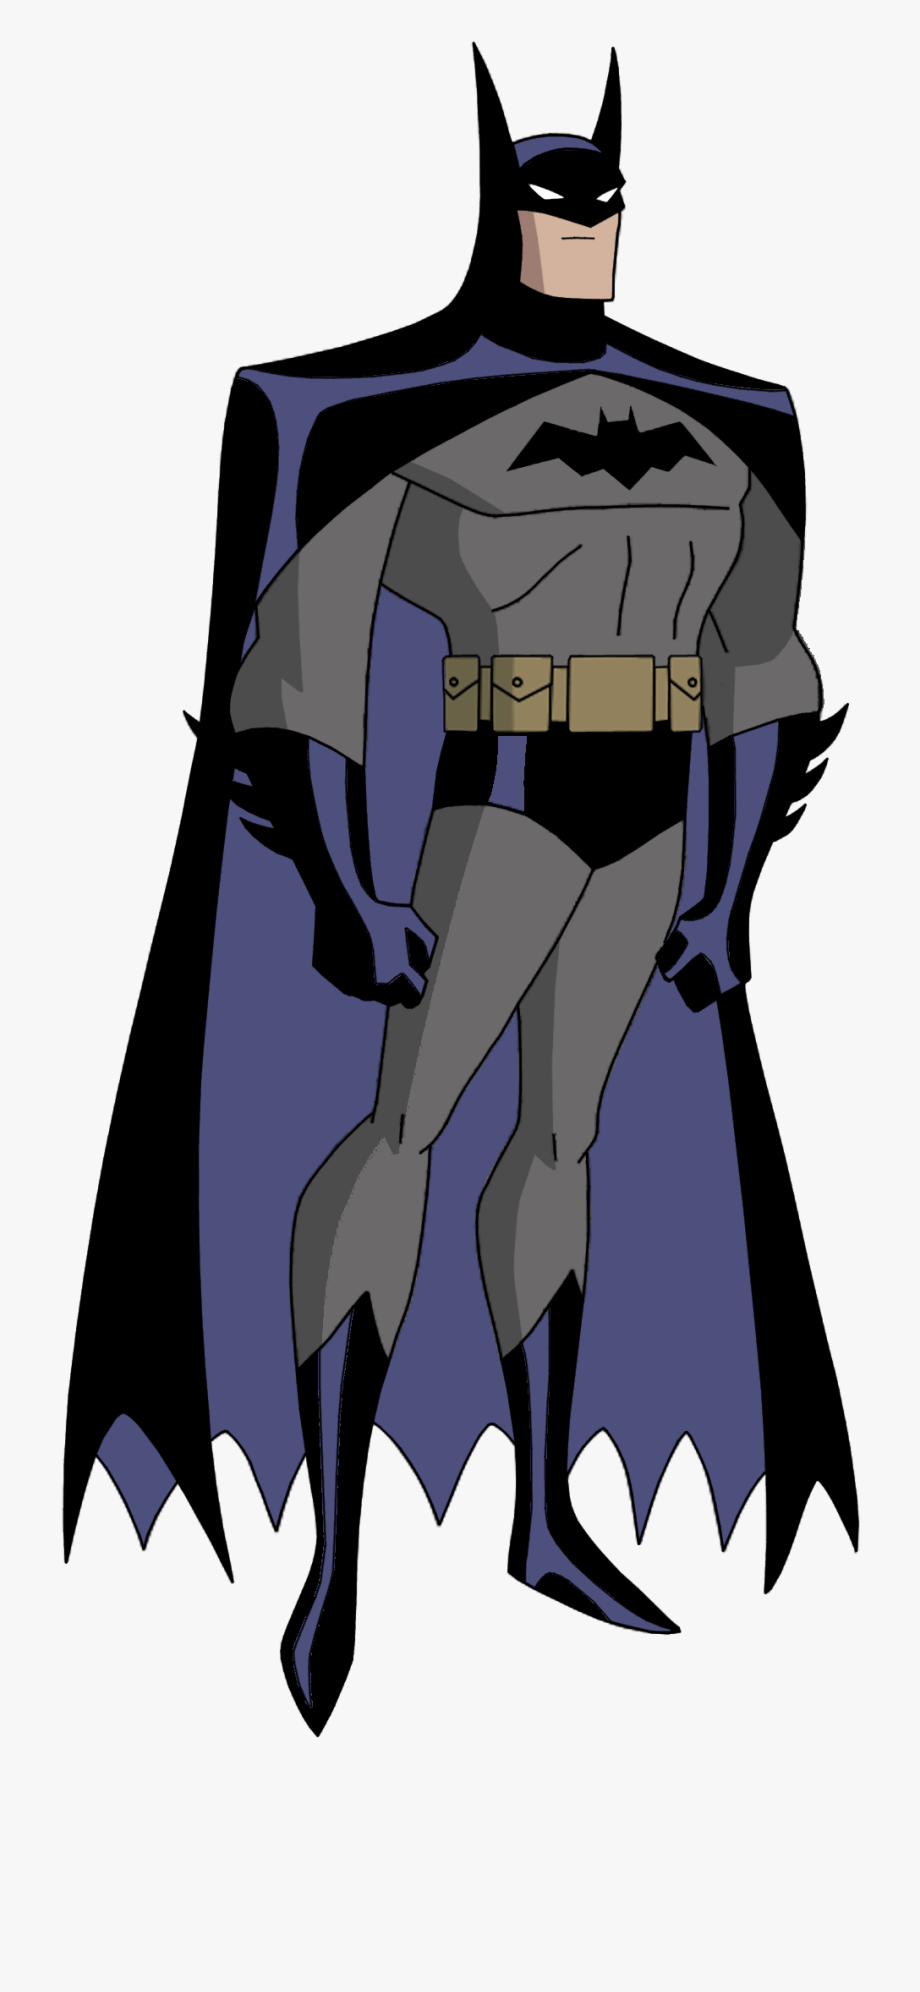 Batman clipart batman costume. Clip art cartoon justice